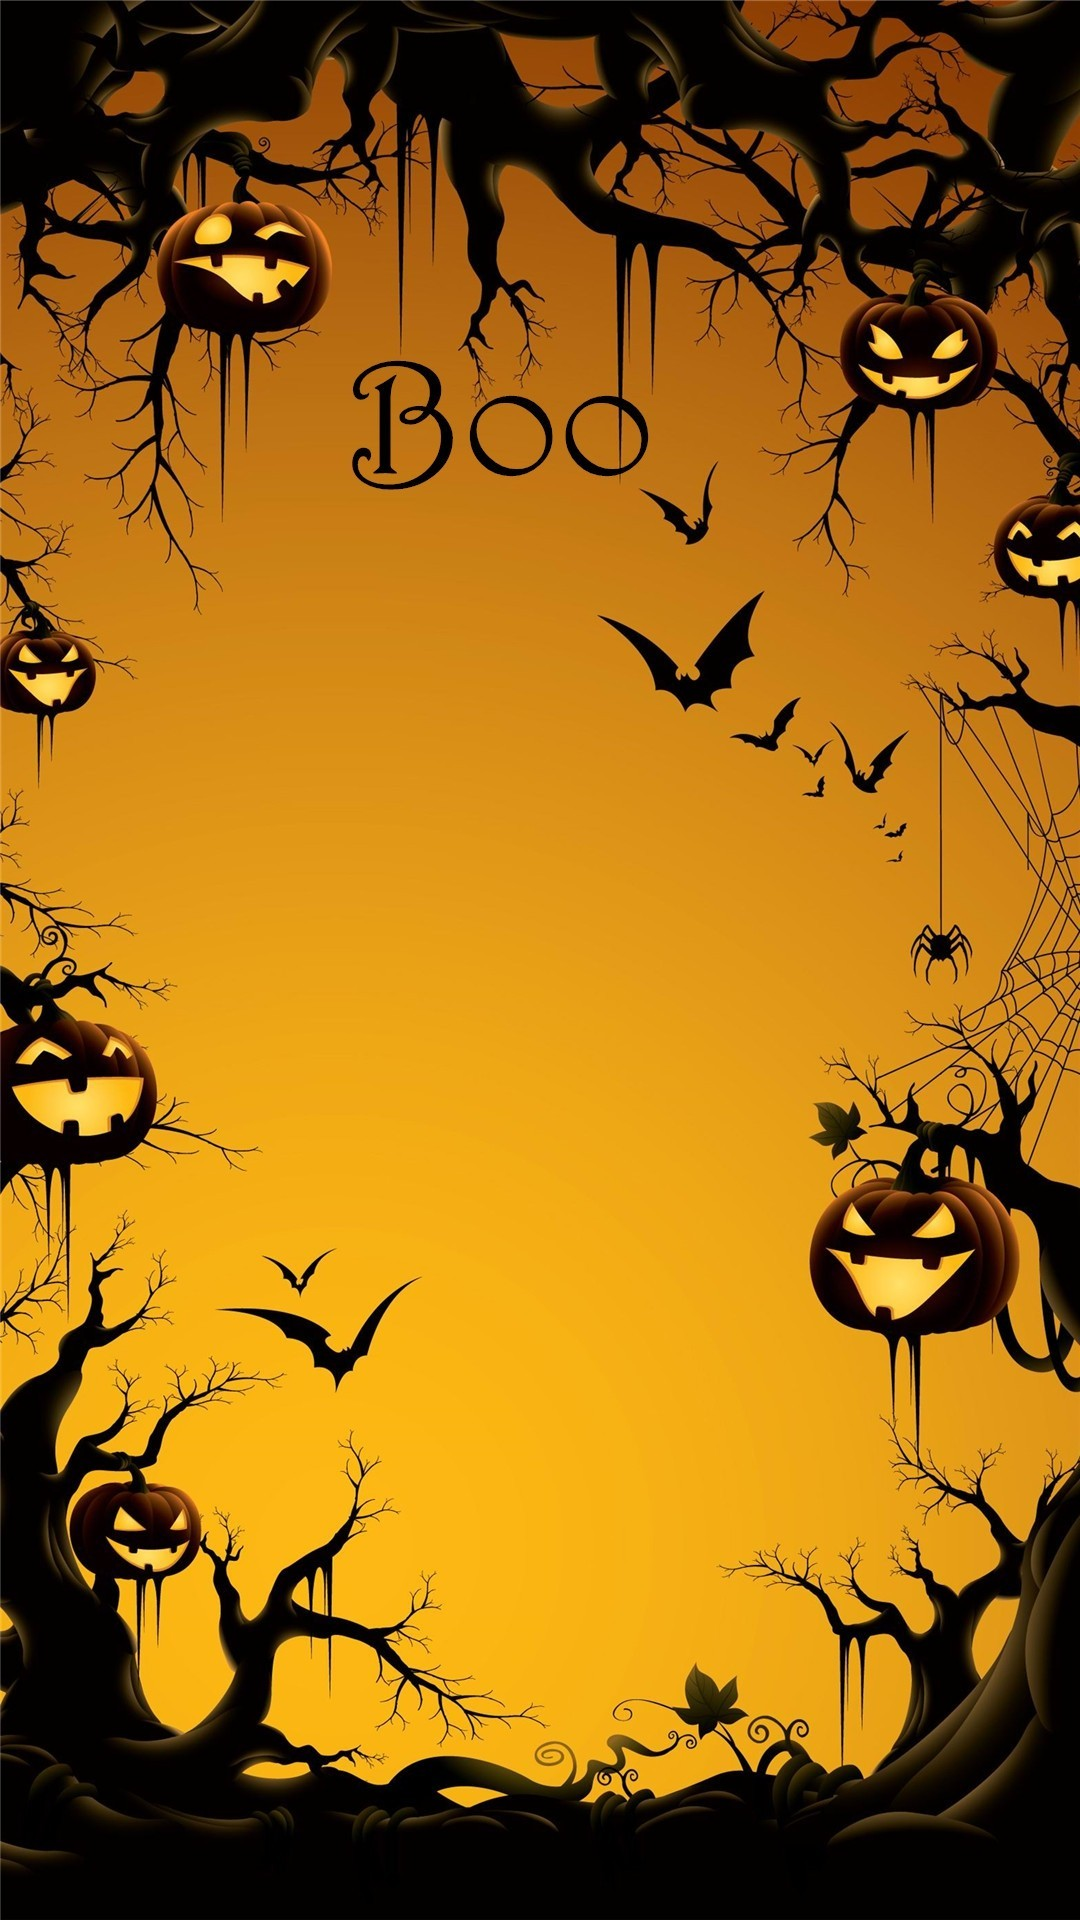 1080x1920 2014 Boo Halloween iPhone 6 plus wallpaper with pumpkin on the tree - bats  #2014